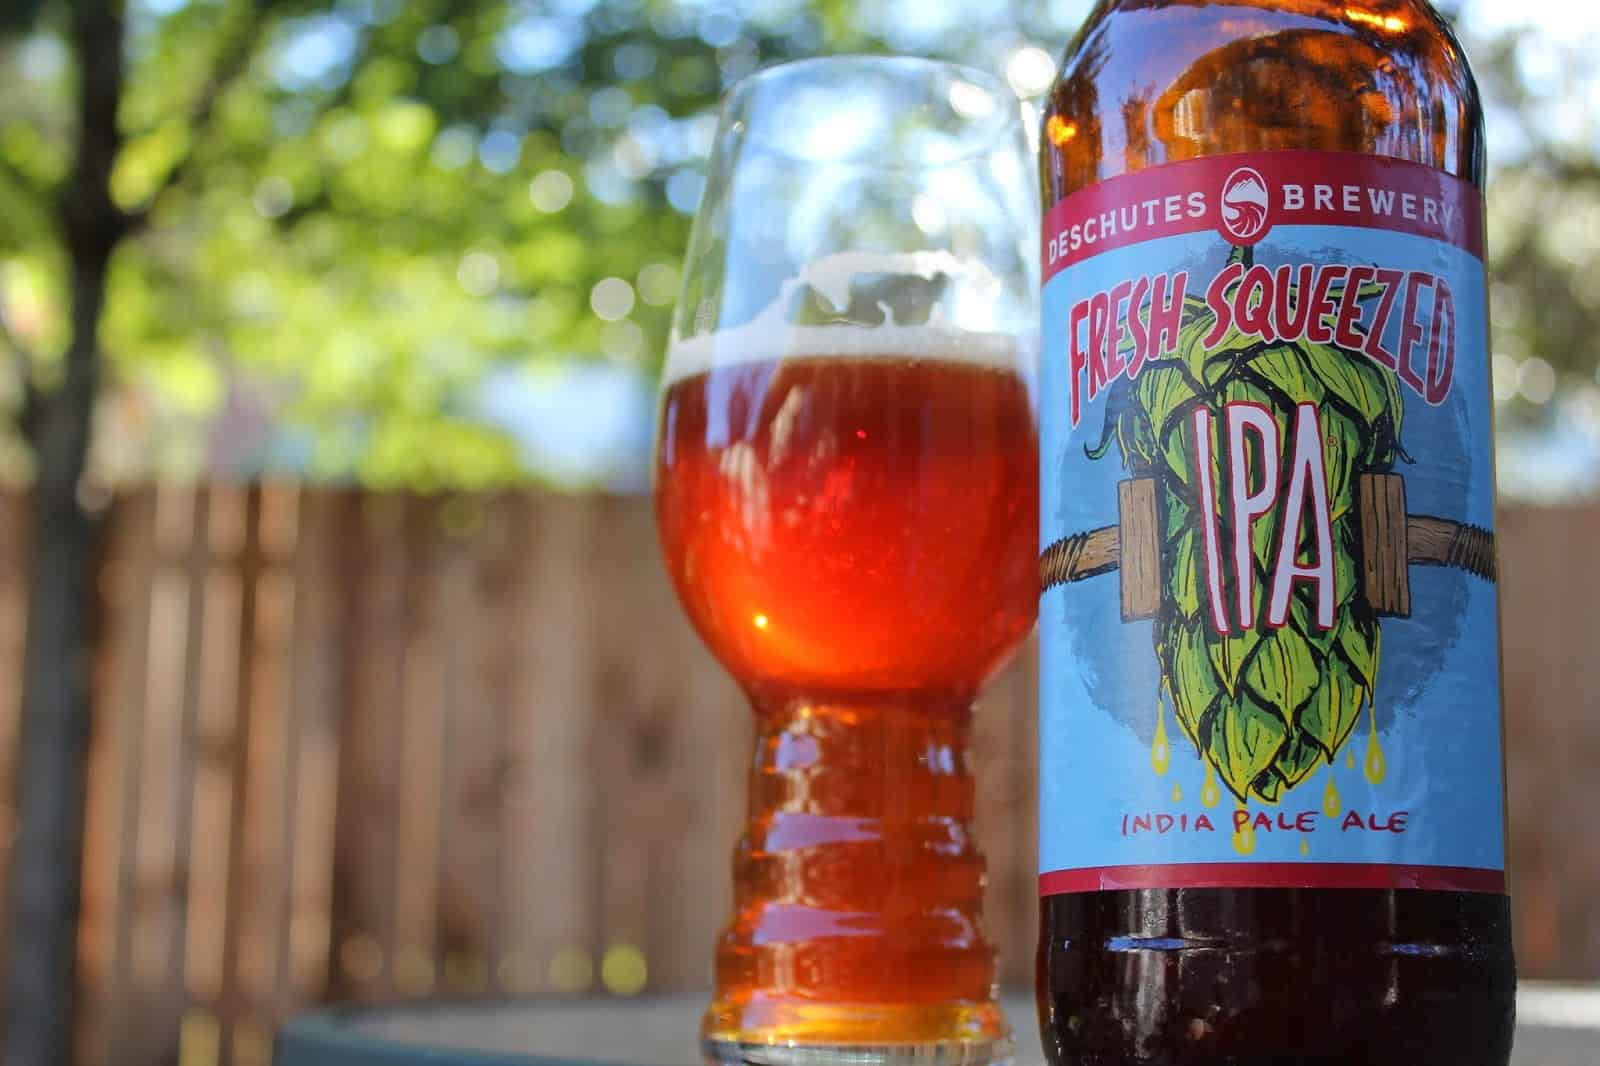 Deschutes Fresh Squeezed IPA – shower beer